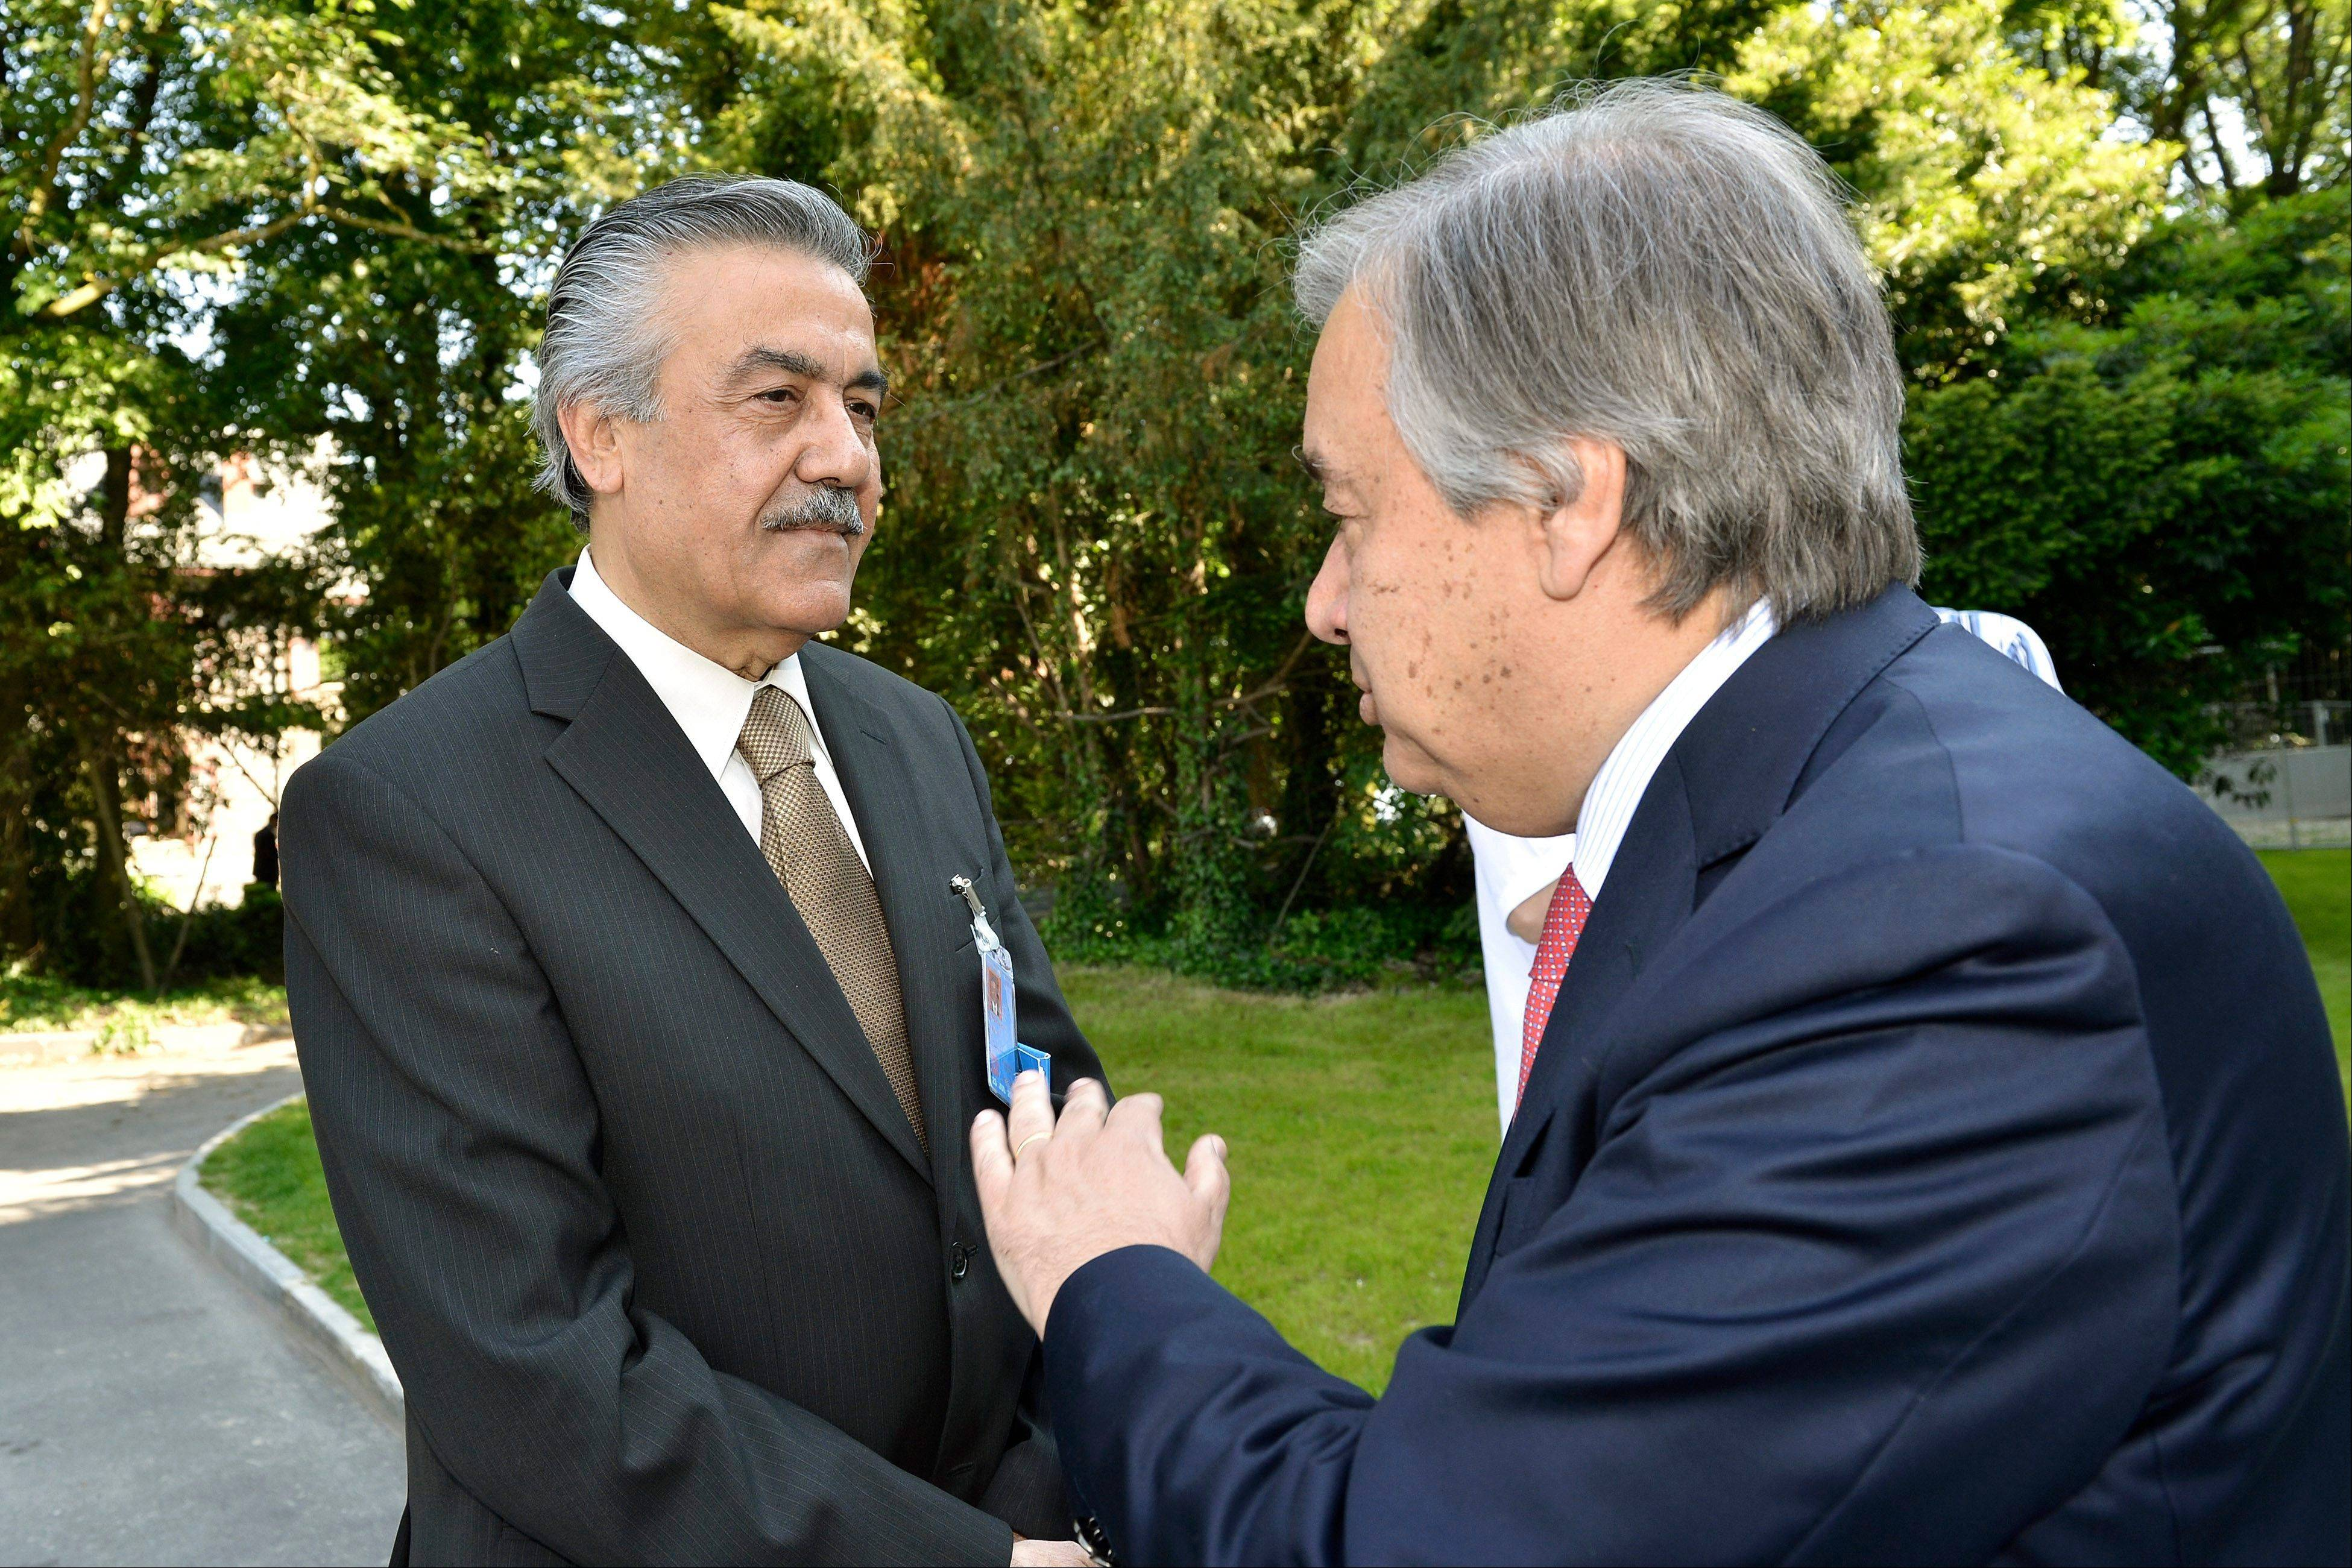 Faysal Khabbaz Hamoui, left, Ambassador of the Permanent Representative Mission of Syria to Geneva, speaks Friday with Antonio Guterres, right, United Nations High Commissioner for Refugees, before a meeting for the launch of the Regional Response Plan for Syrian Refugees and Syrian Humanitarian Assistance Response Plan at the World Trade Organization headquarters in Geneva, Switzerland.